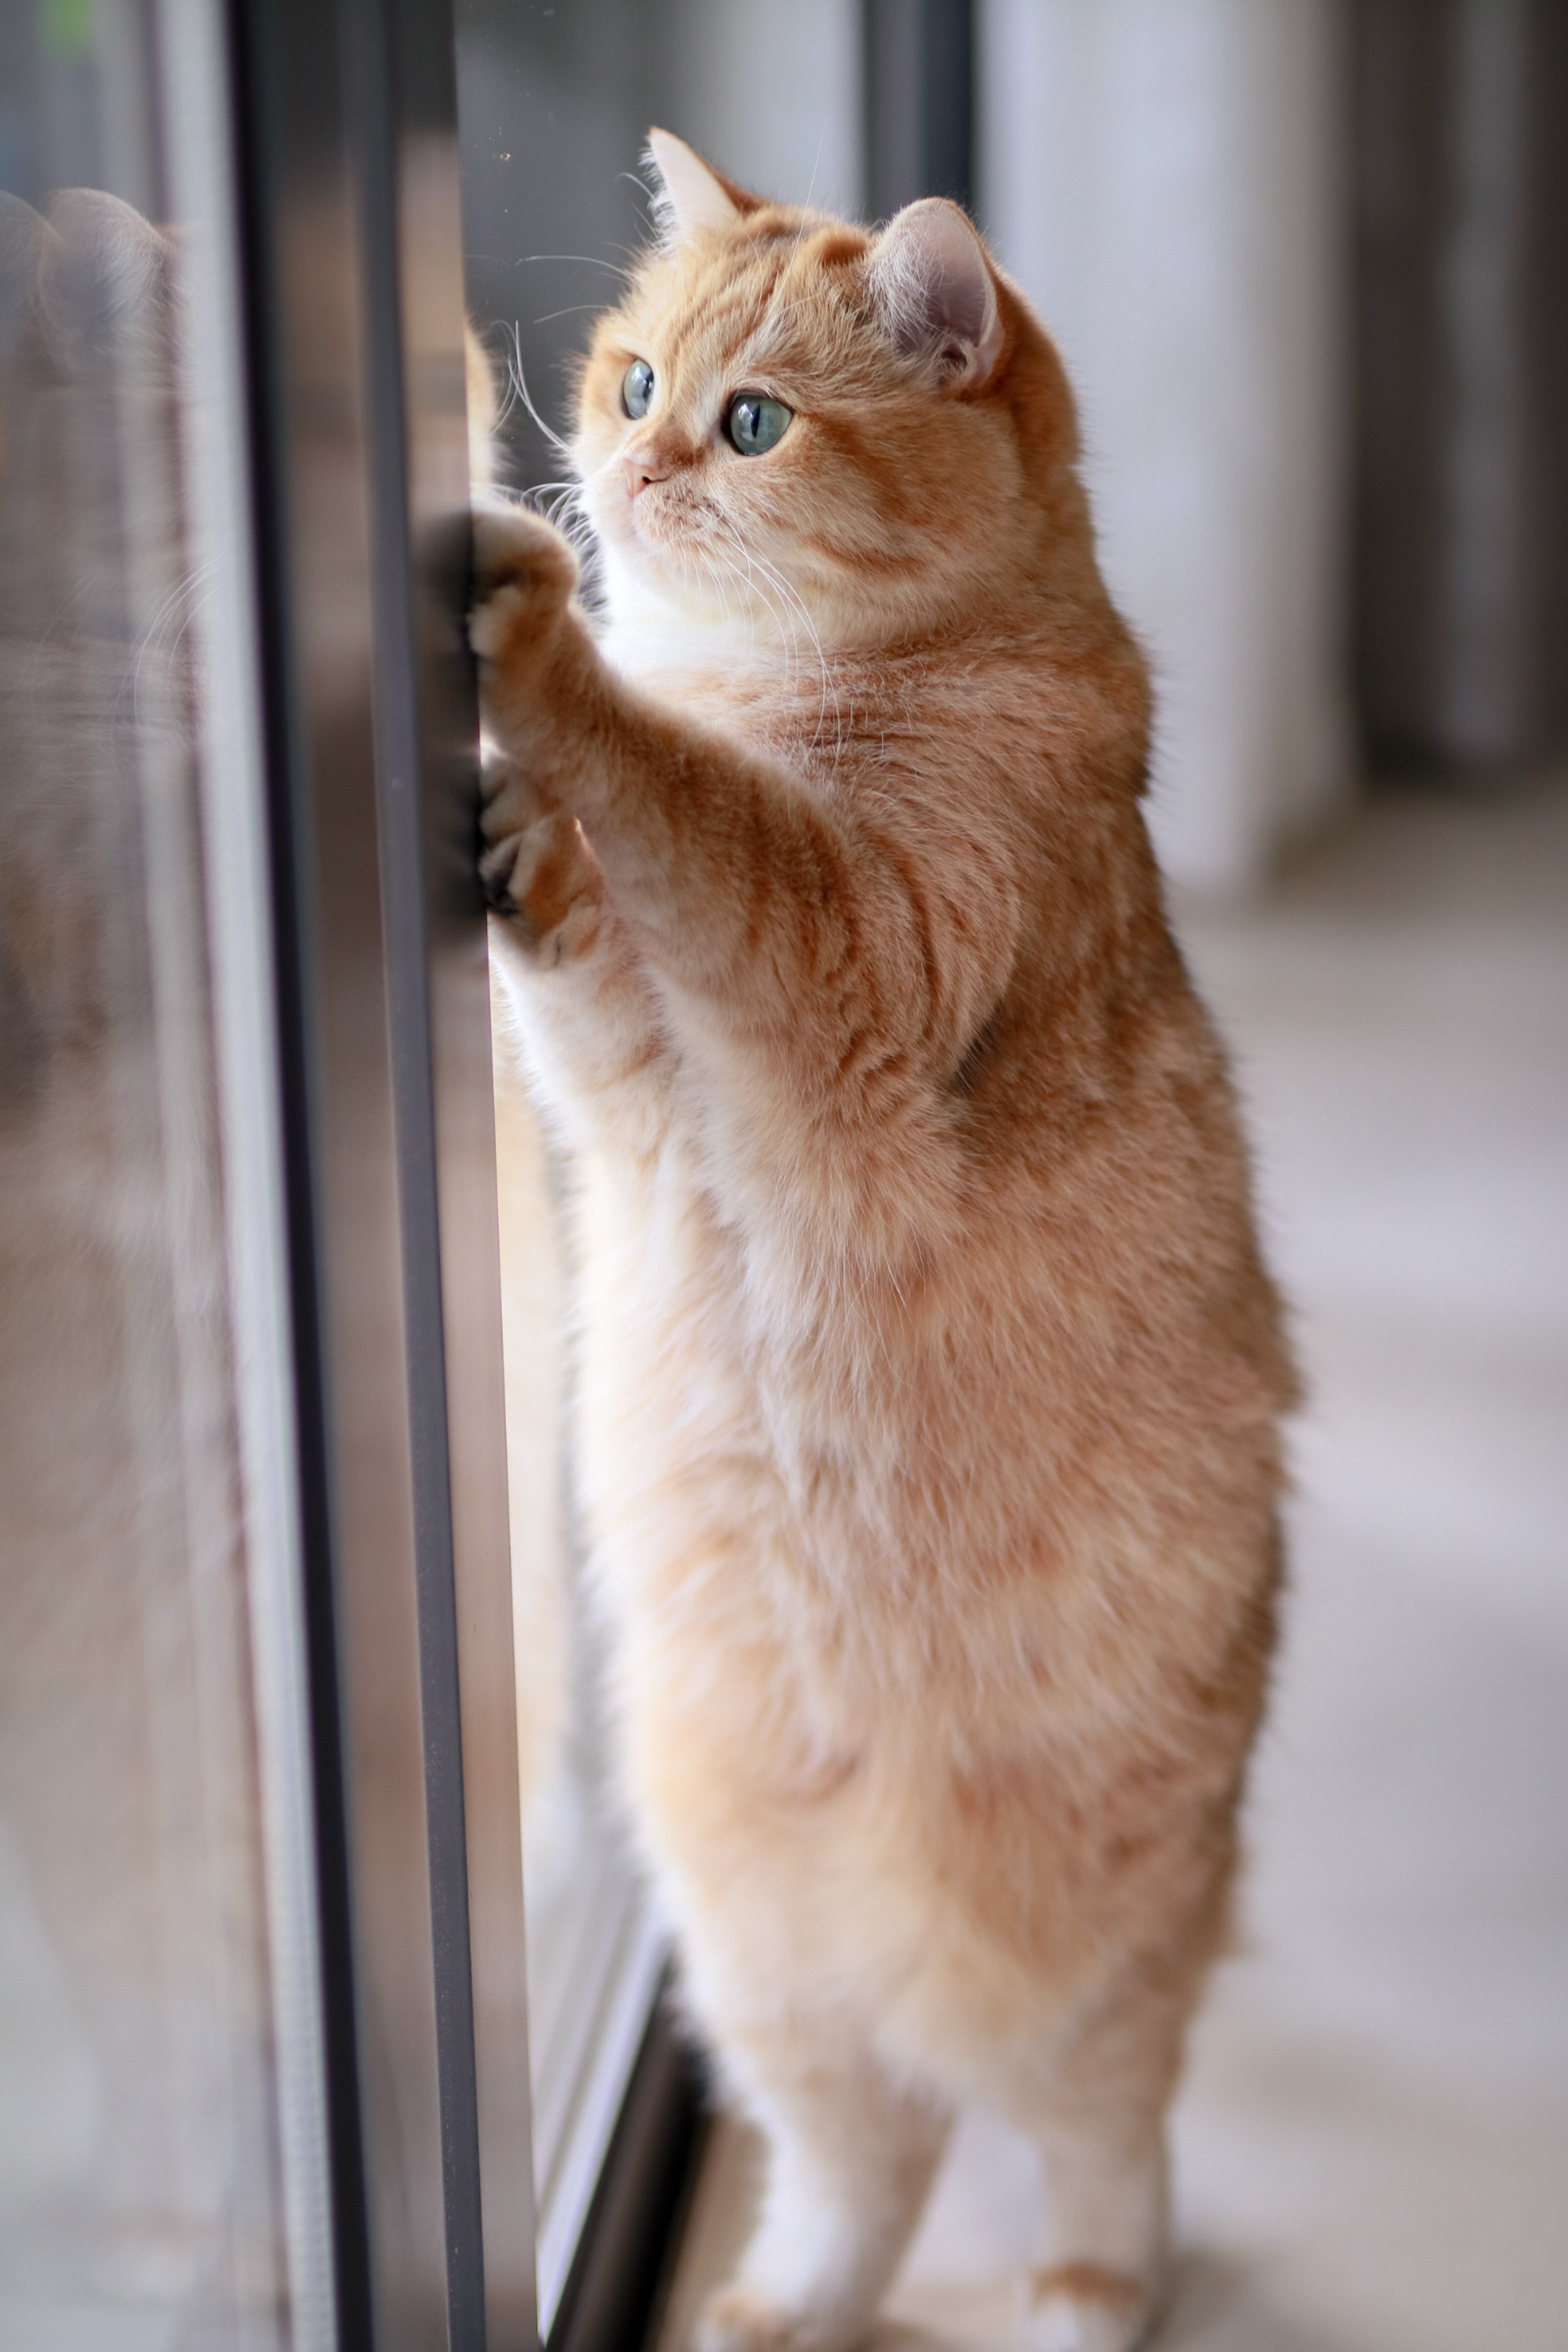 110755 download wallpaper Cat, Funny, Animals, Pet, Nice, Sweetheart, Redhead screensavers and pictures for free